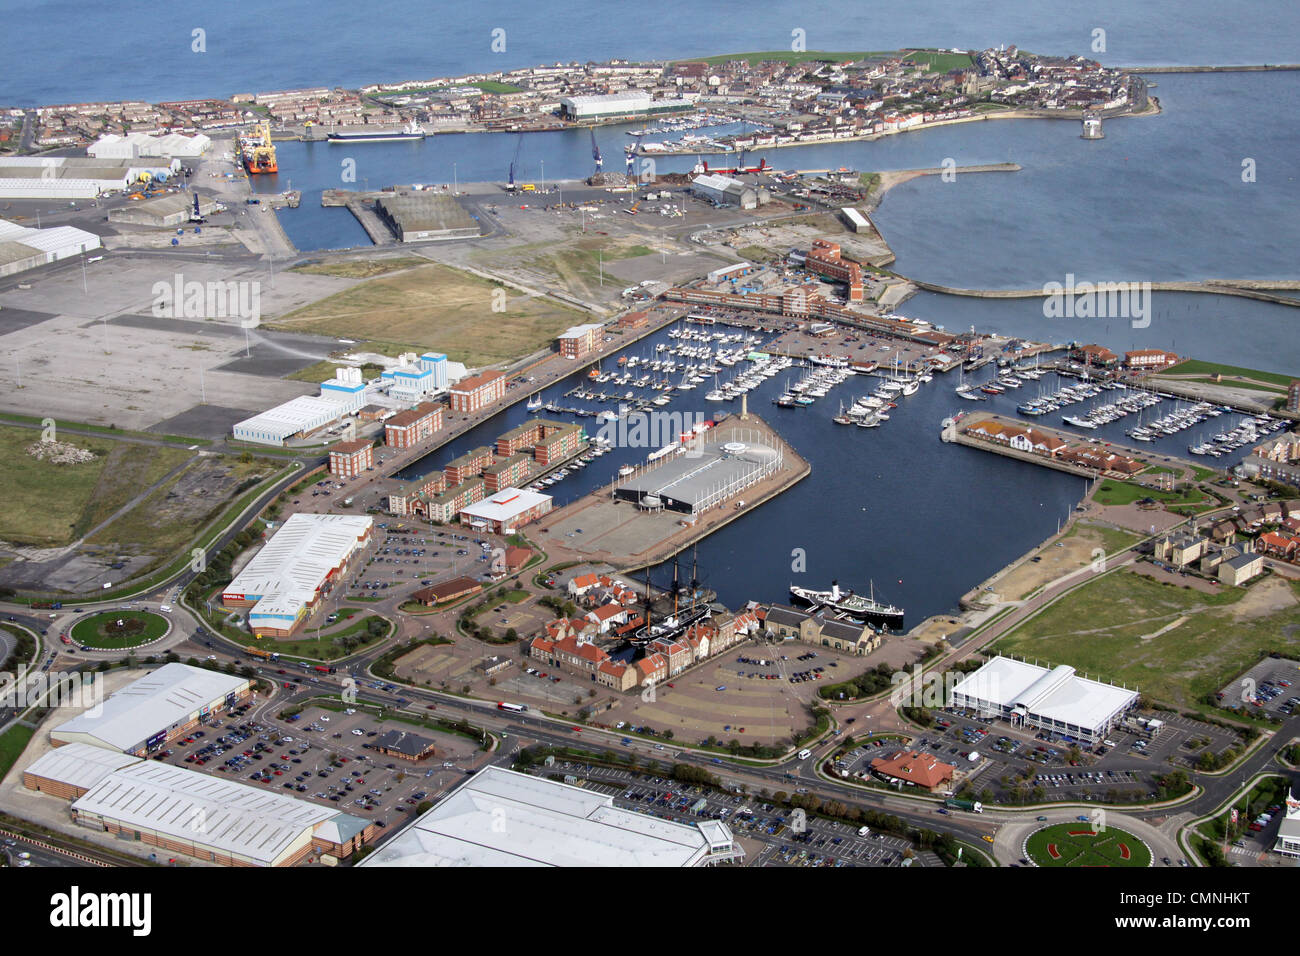 aerial view of Hartlepool town, Historic Quay, Marina and Docks - Stock Image